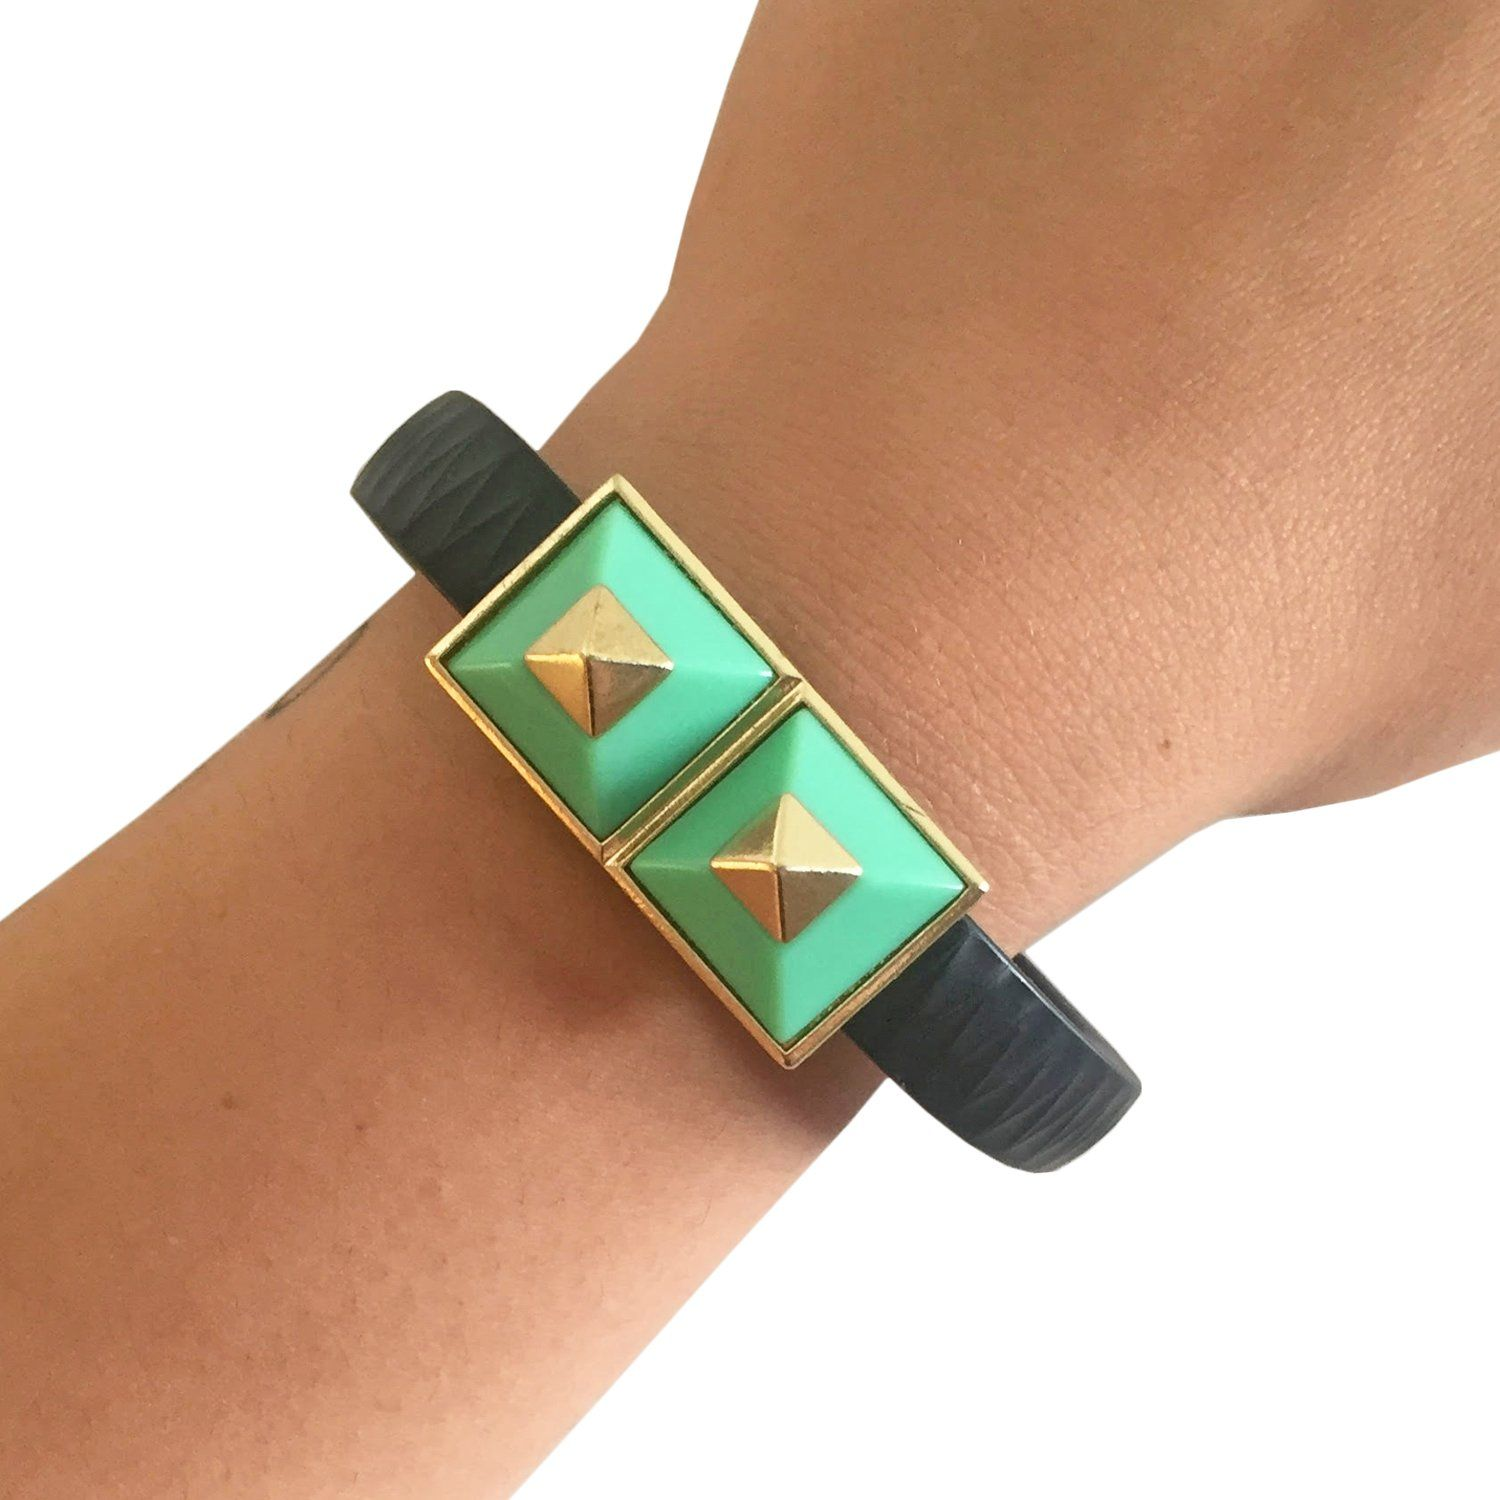 Charm to accessorize the fitbit flex fitbit flex or jawbone up